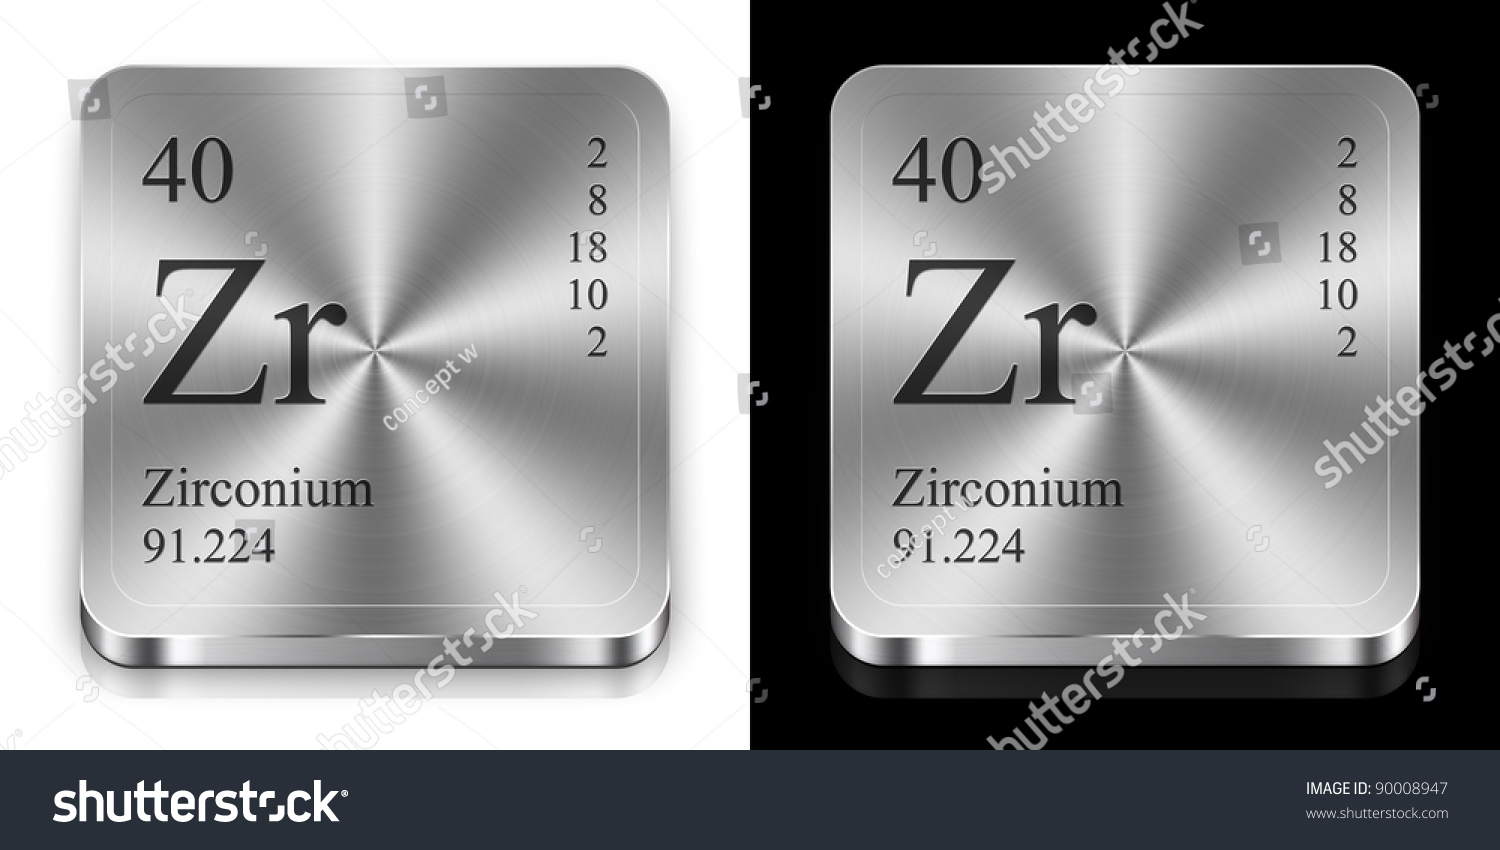 Zirconium element periodic table two metal stock illustration zirconium element of the periodic table two metal web buttons urtaz Gallery